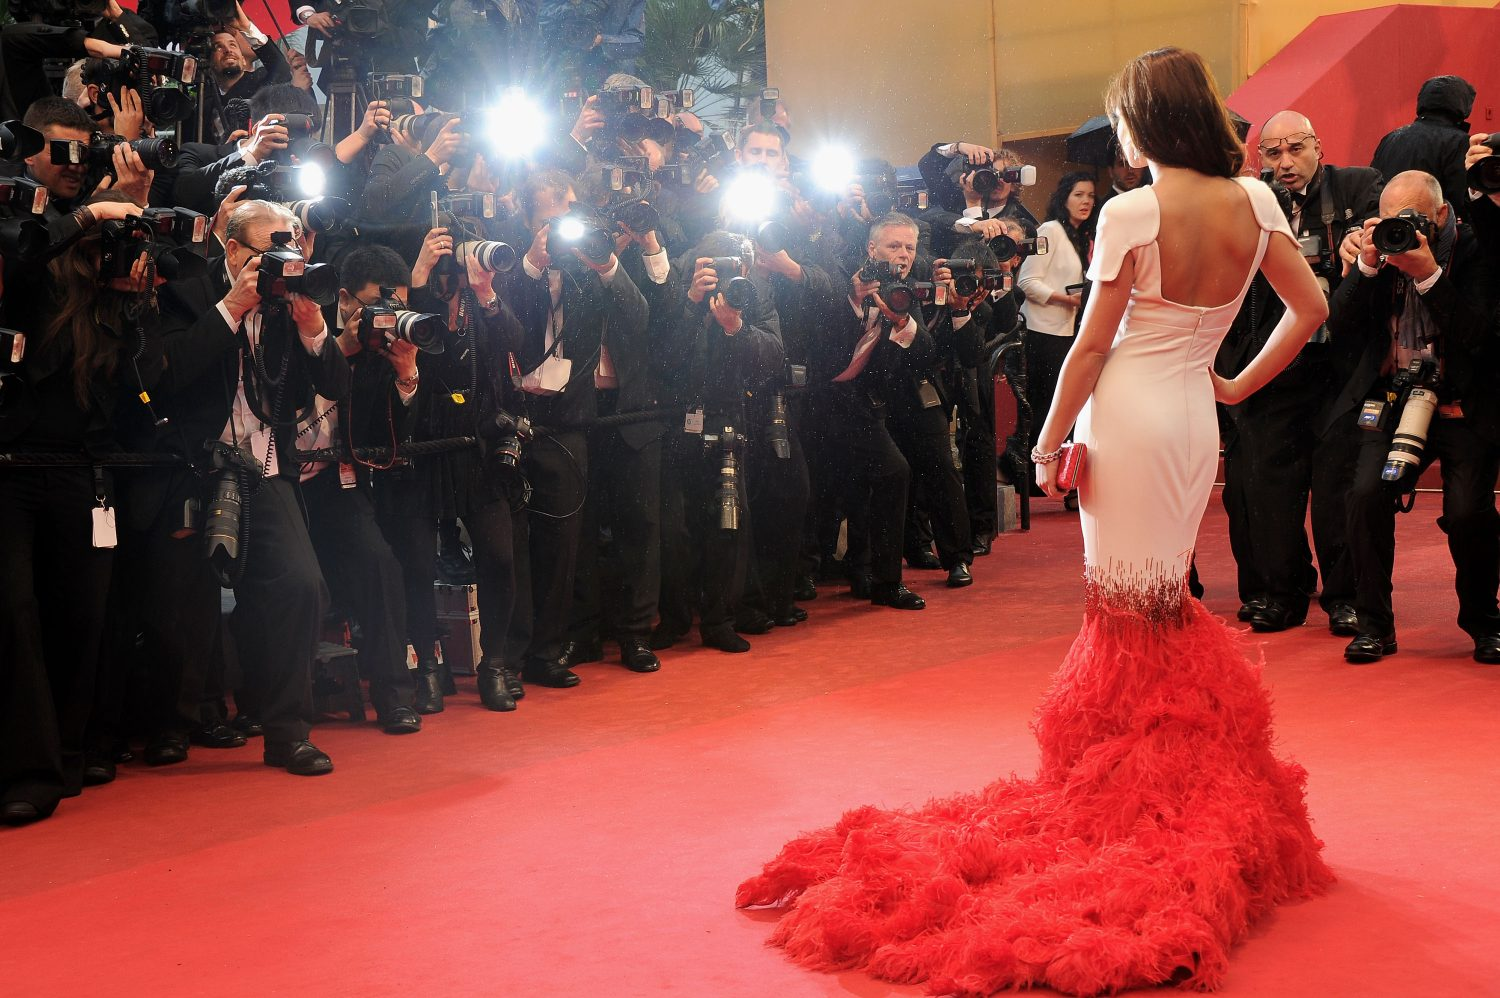 The Best Red Carpet Fashion from the First Day of the 2015 Cannes Film Festival